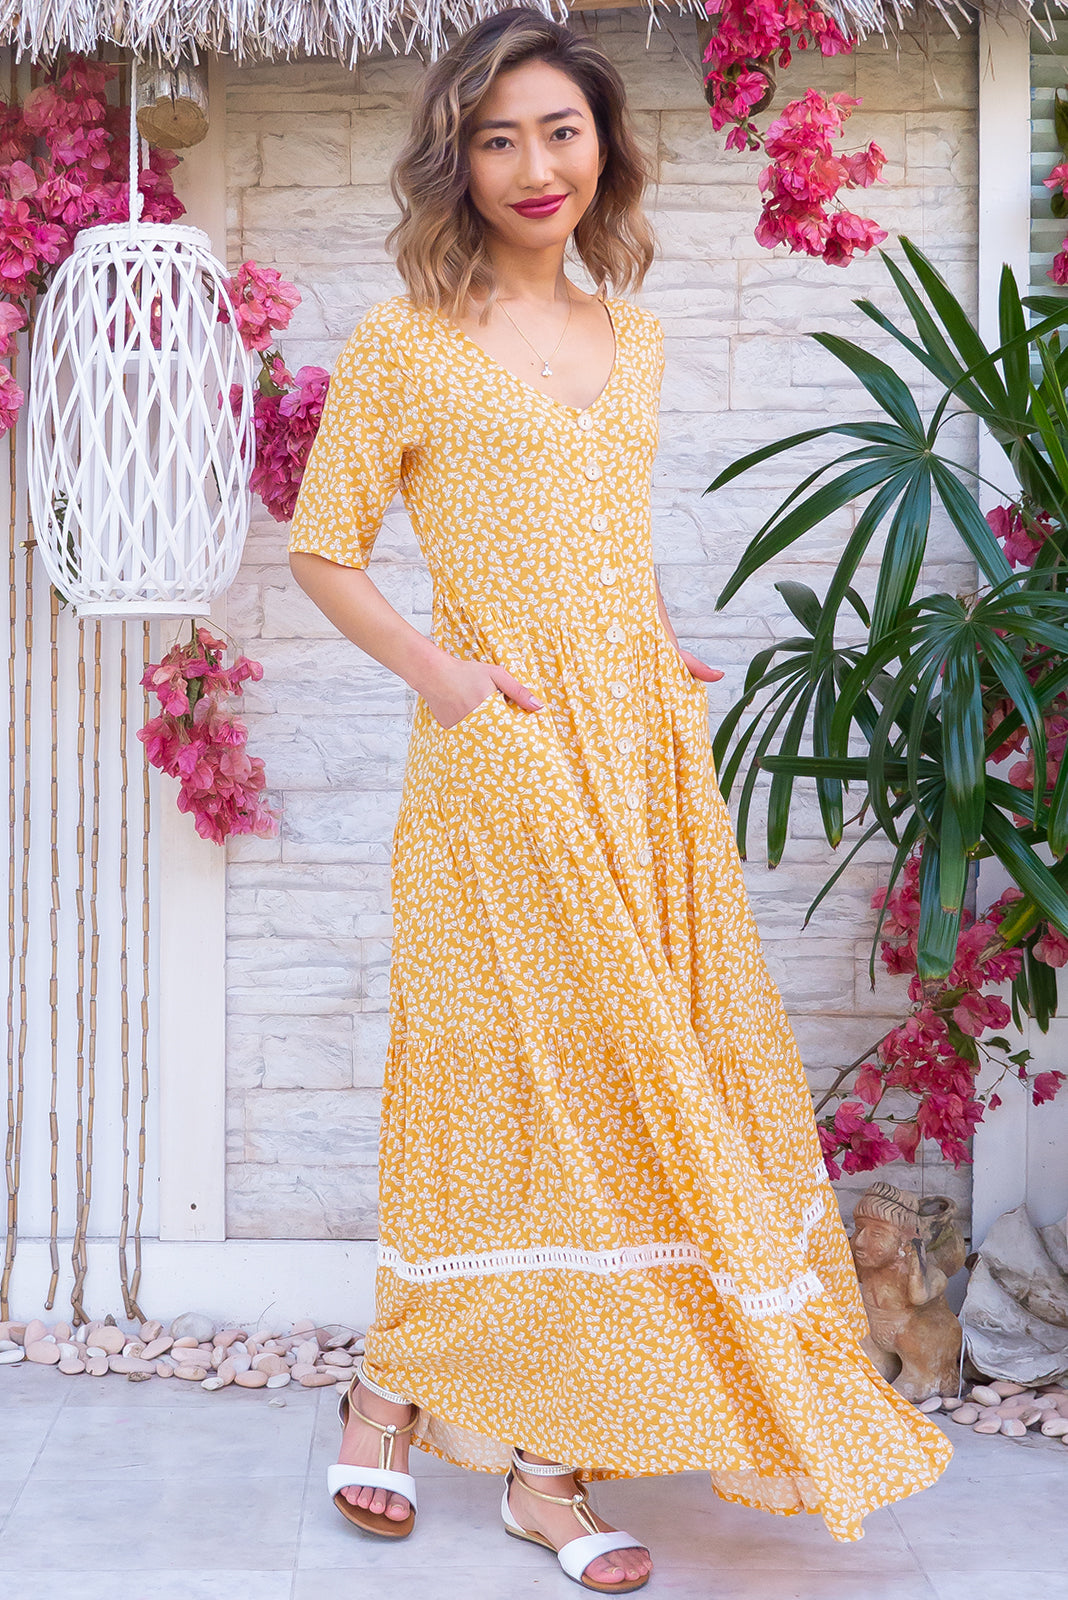 The Georgiana Gold Lark Maxi Dress features functional button front, buttons and side tabs at waist, side pockets, tiered skirt with lace insert and 100% rayon in gold base with delicate white floral design.